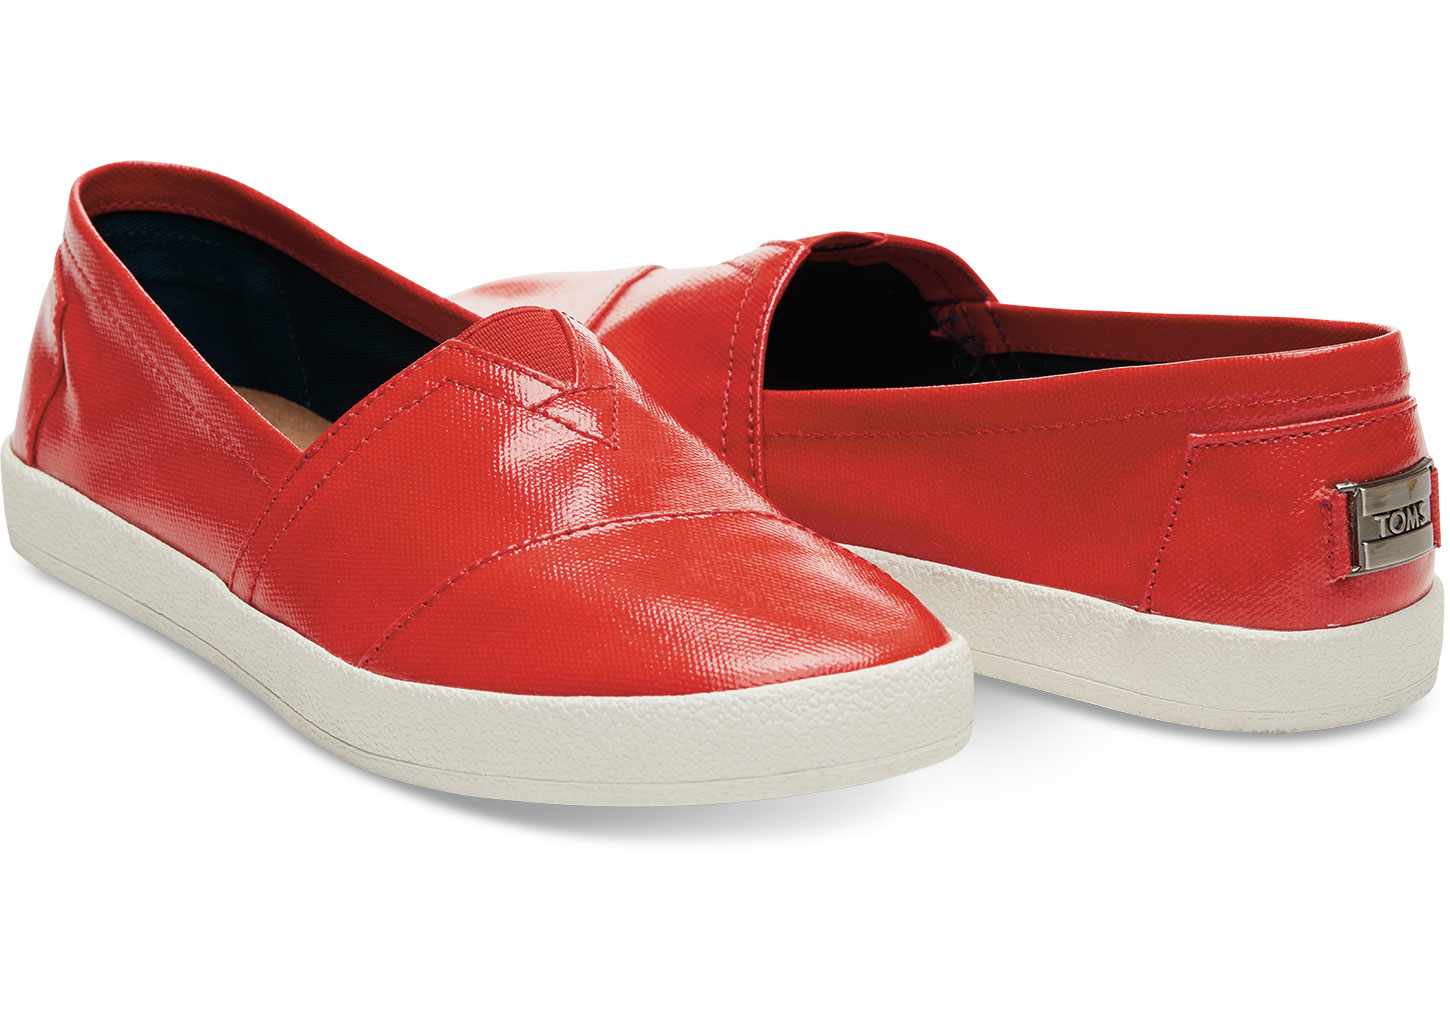 Women Slip On Shoes Patent Leather